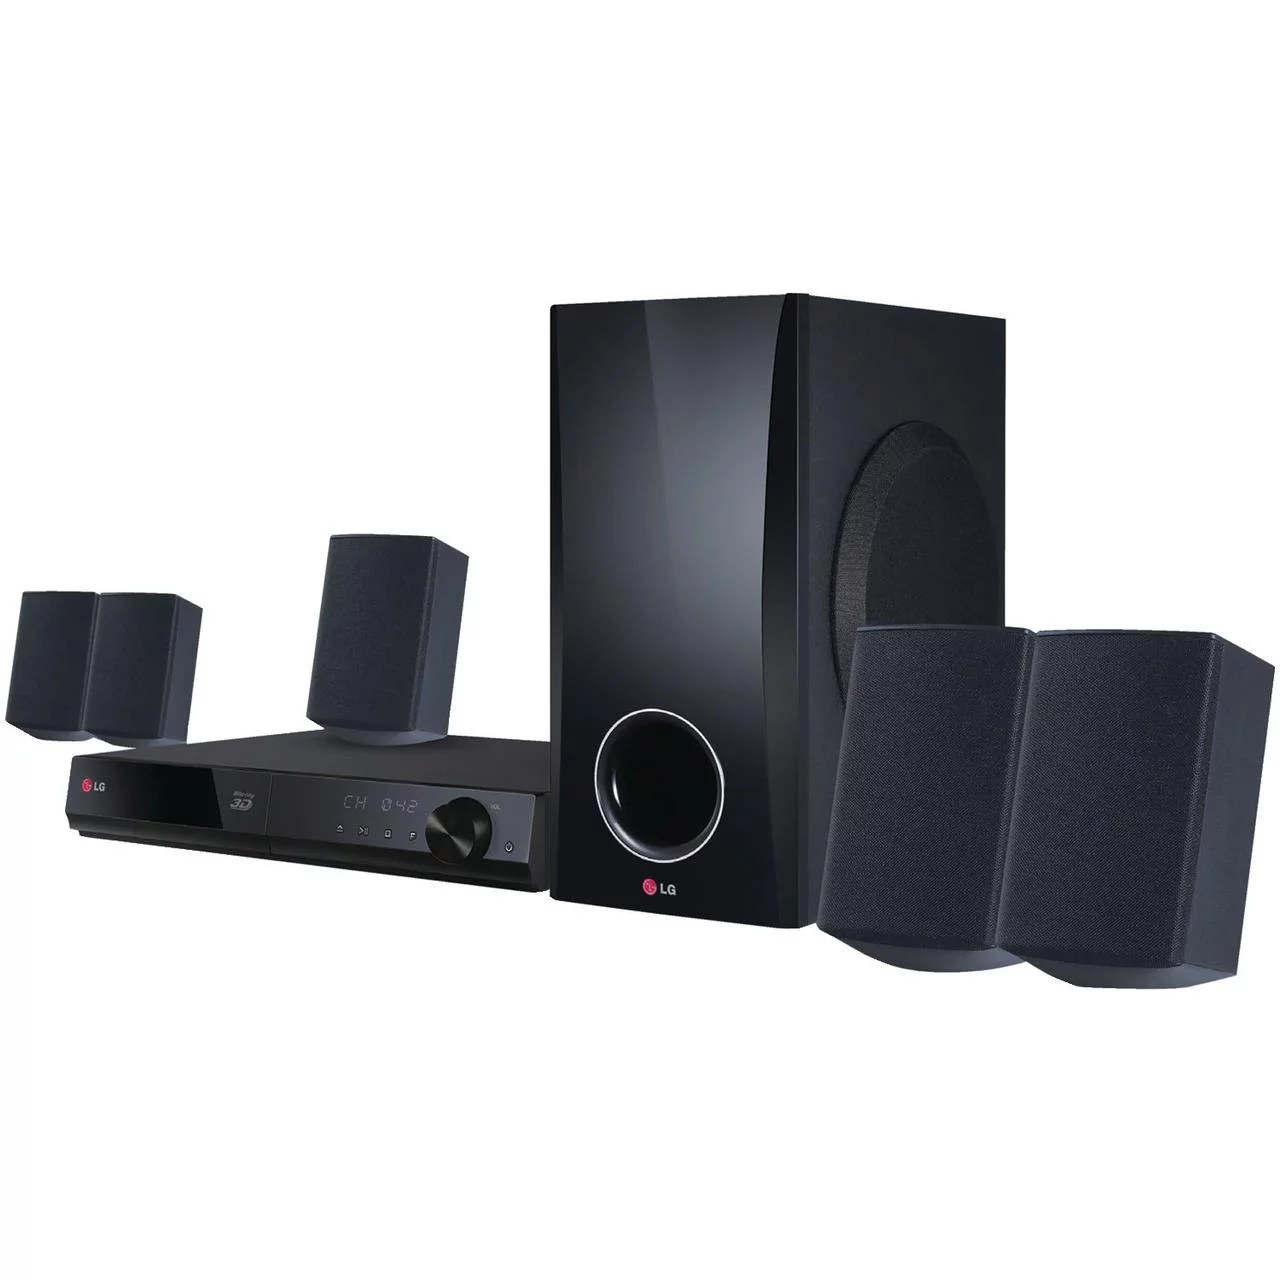 hight resolution of lg 5 1 channel 500w smart 3d blu ray home theater system bh5140s walmart com